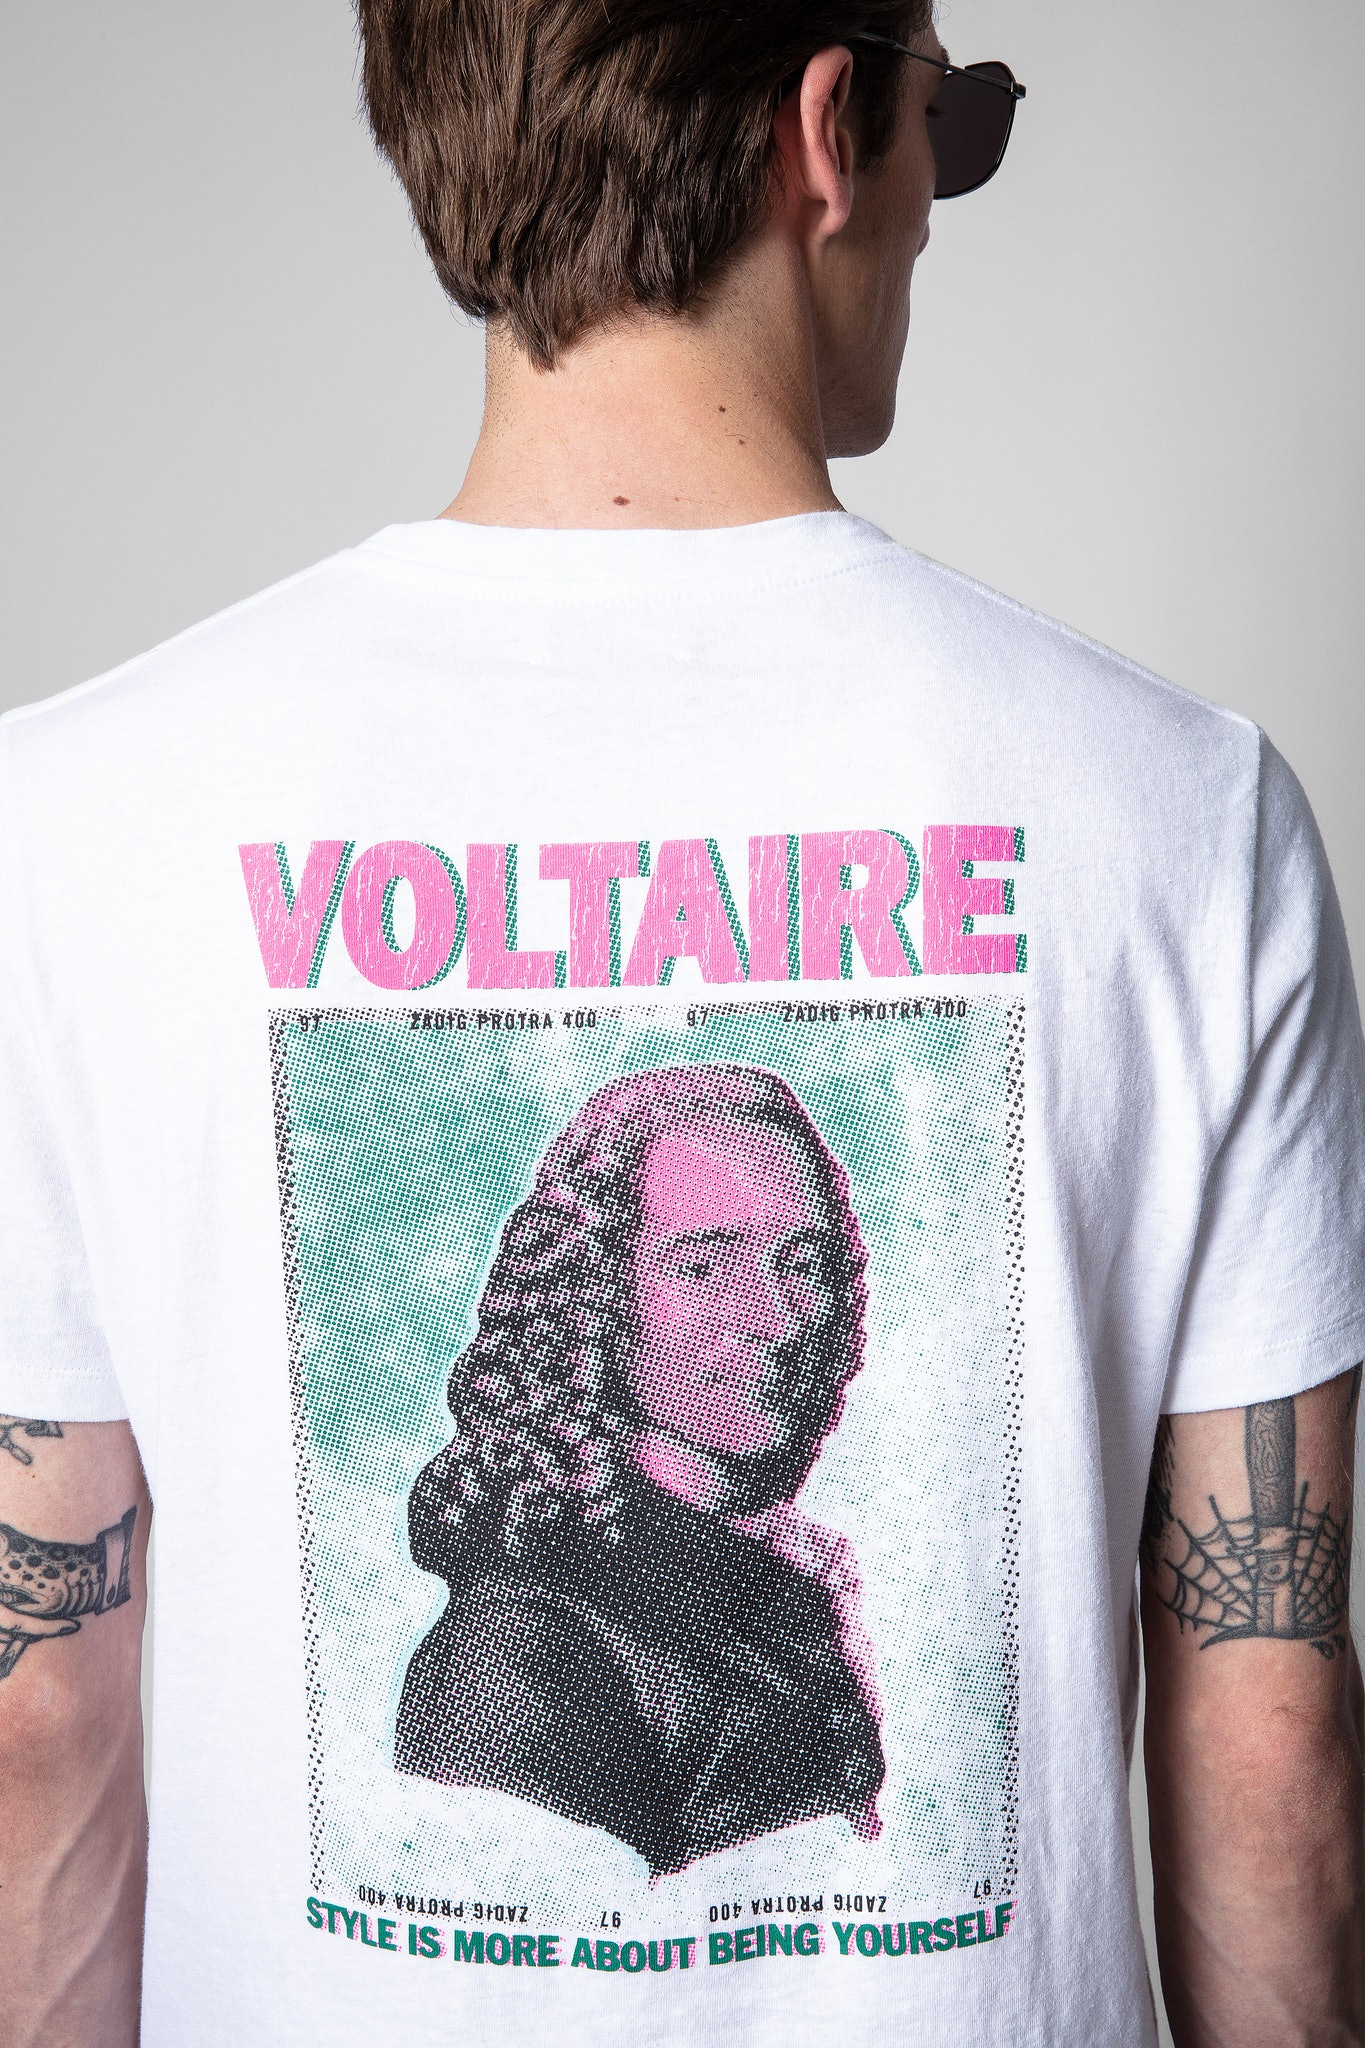 Ted Voltaire T-shirt